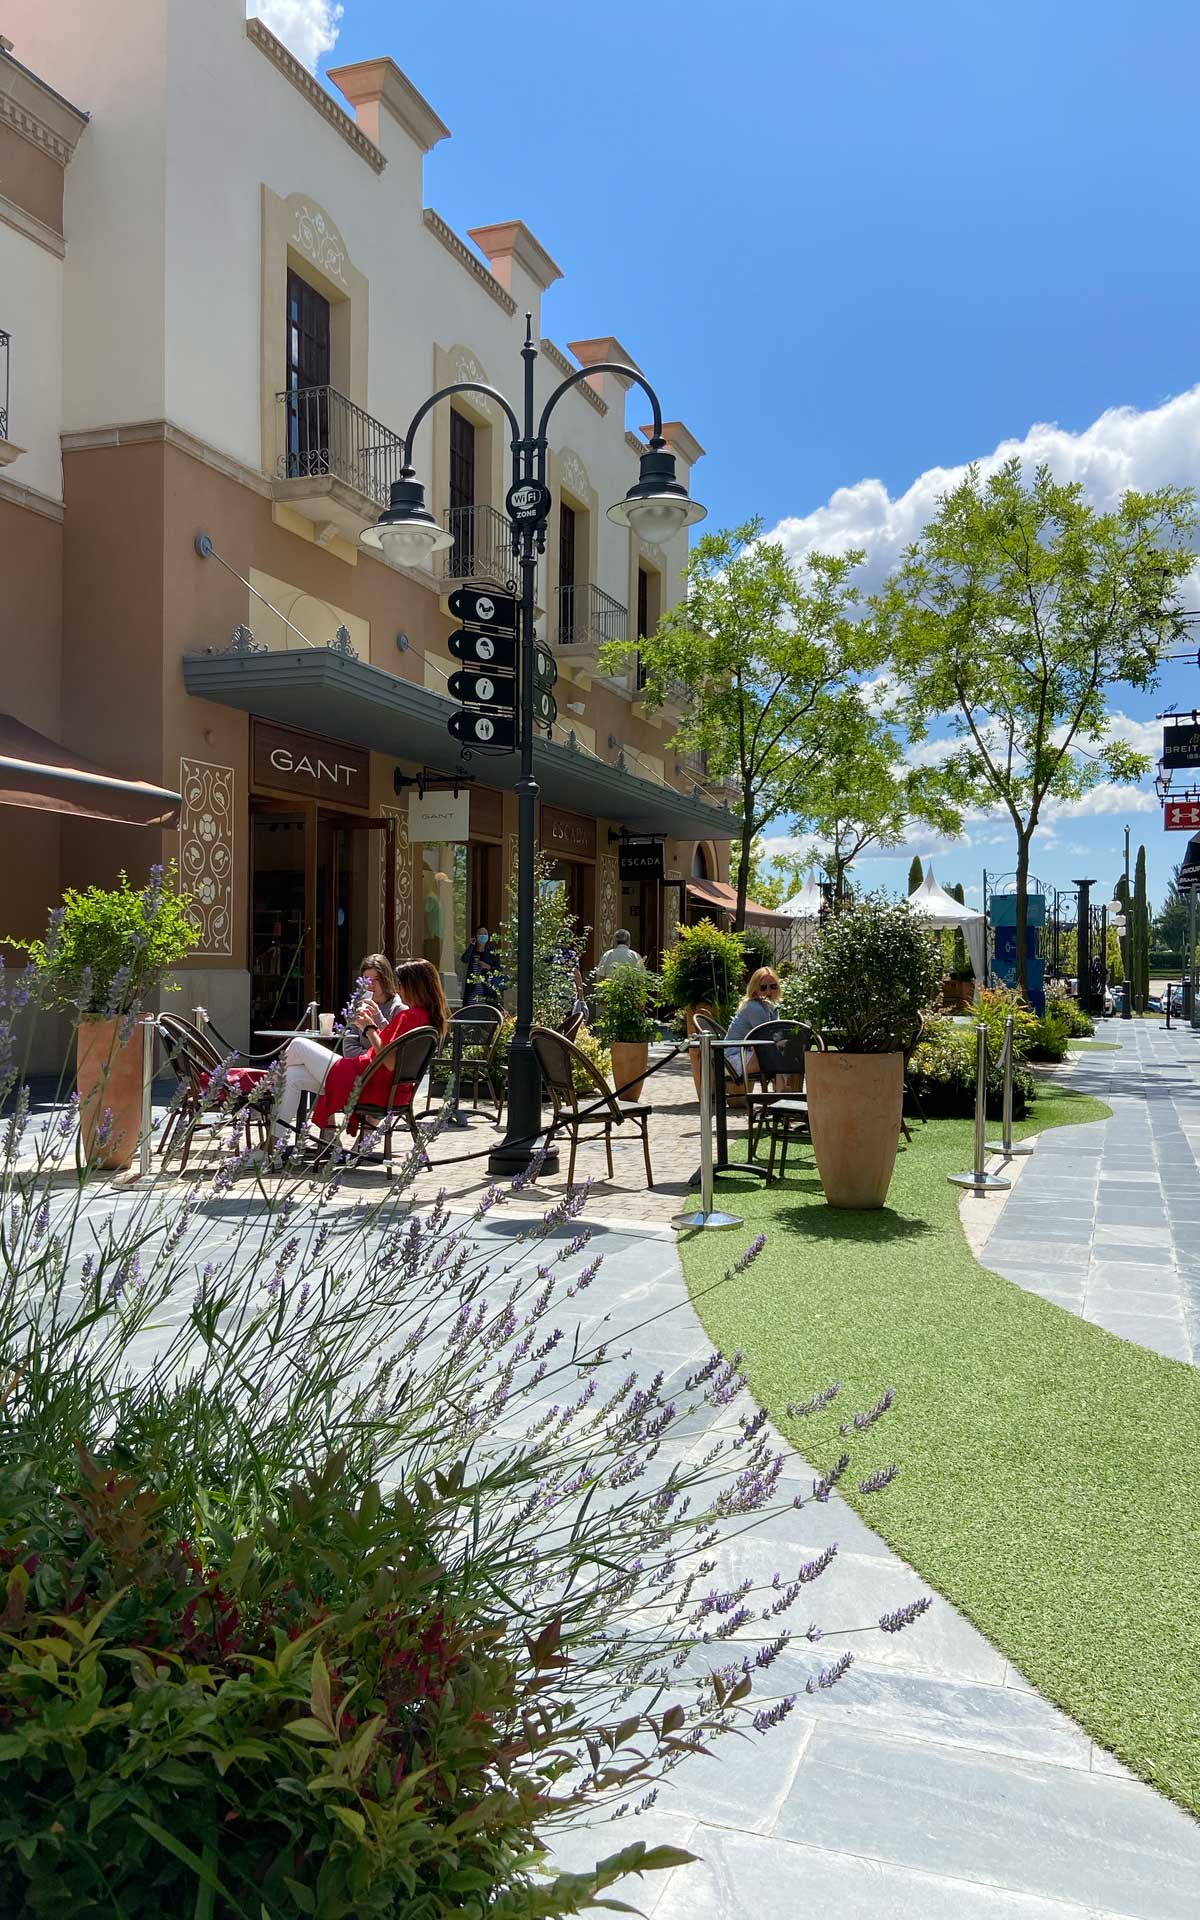 Starbucks terrace Las Rozas Village